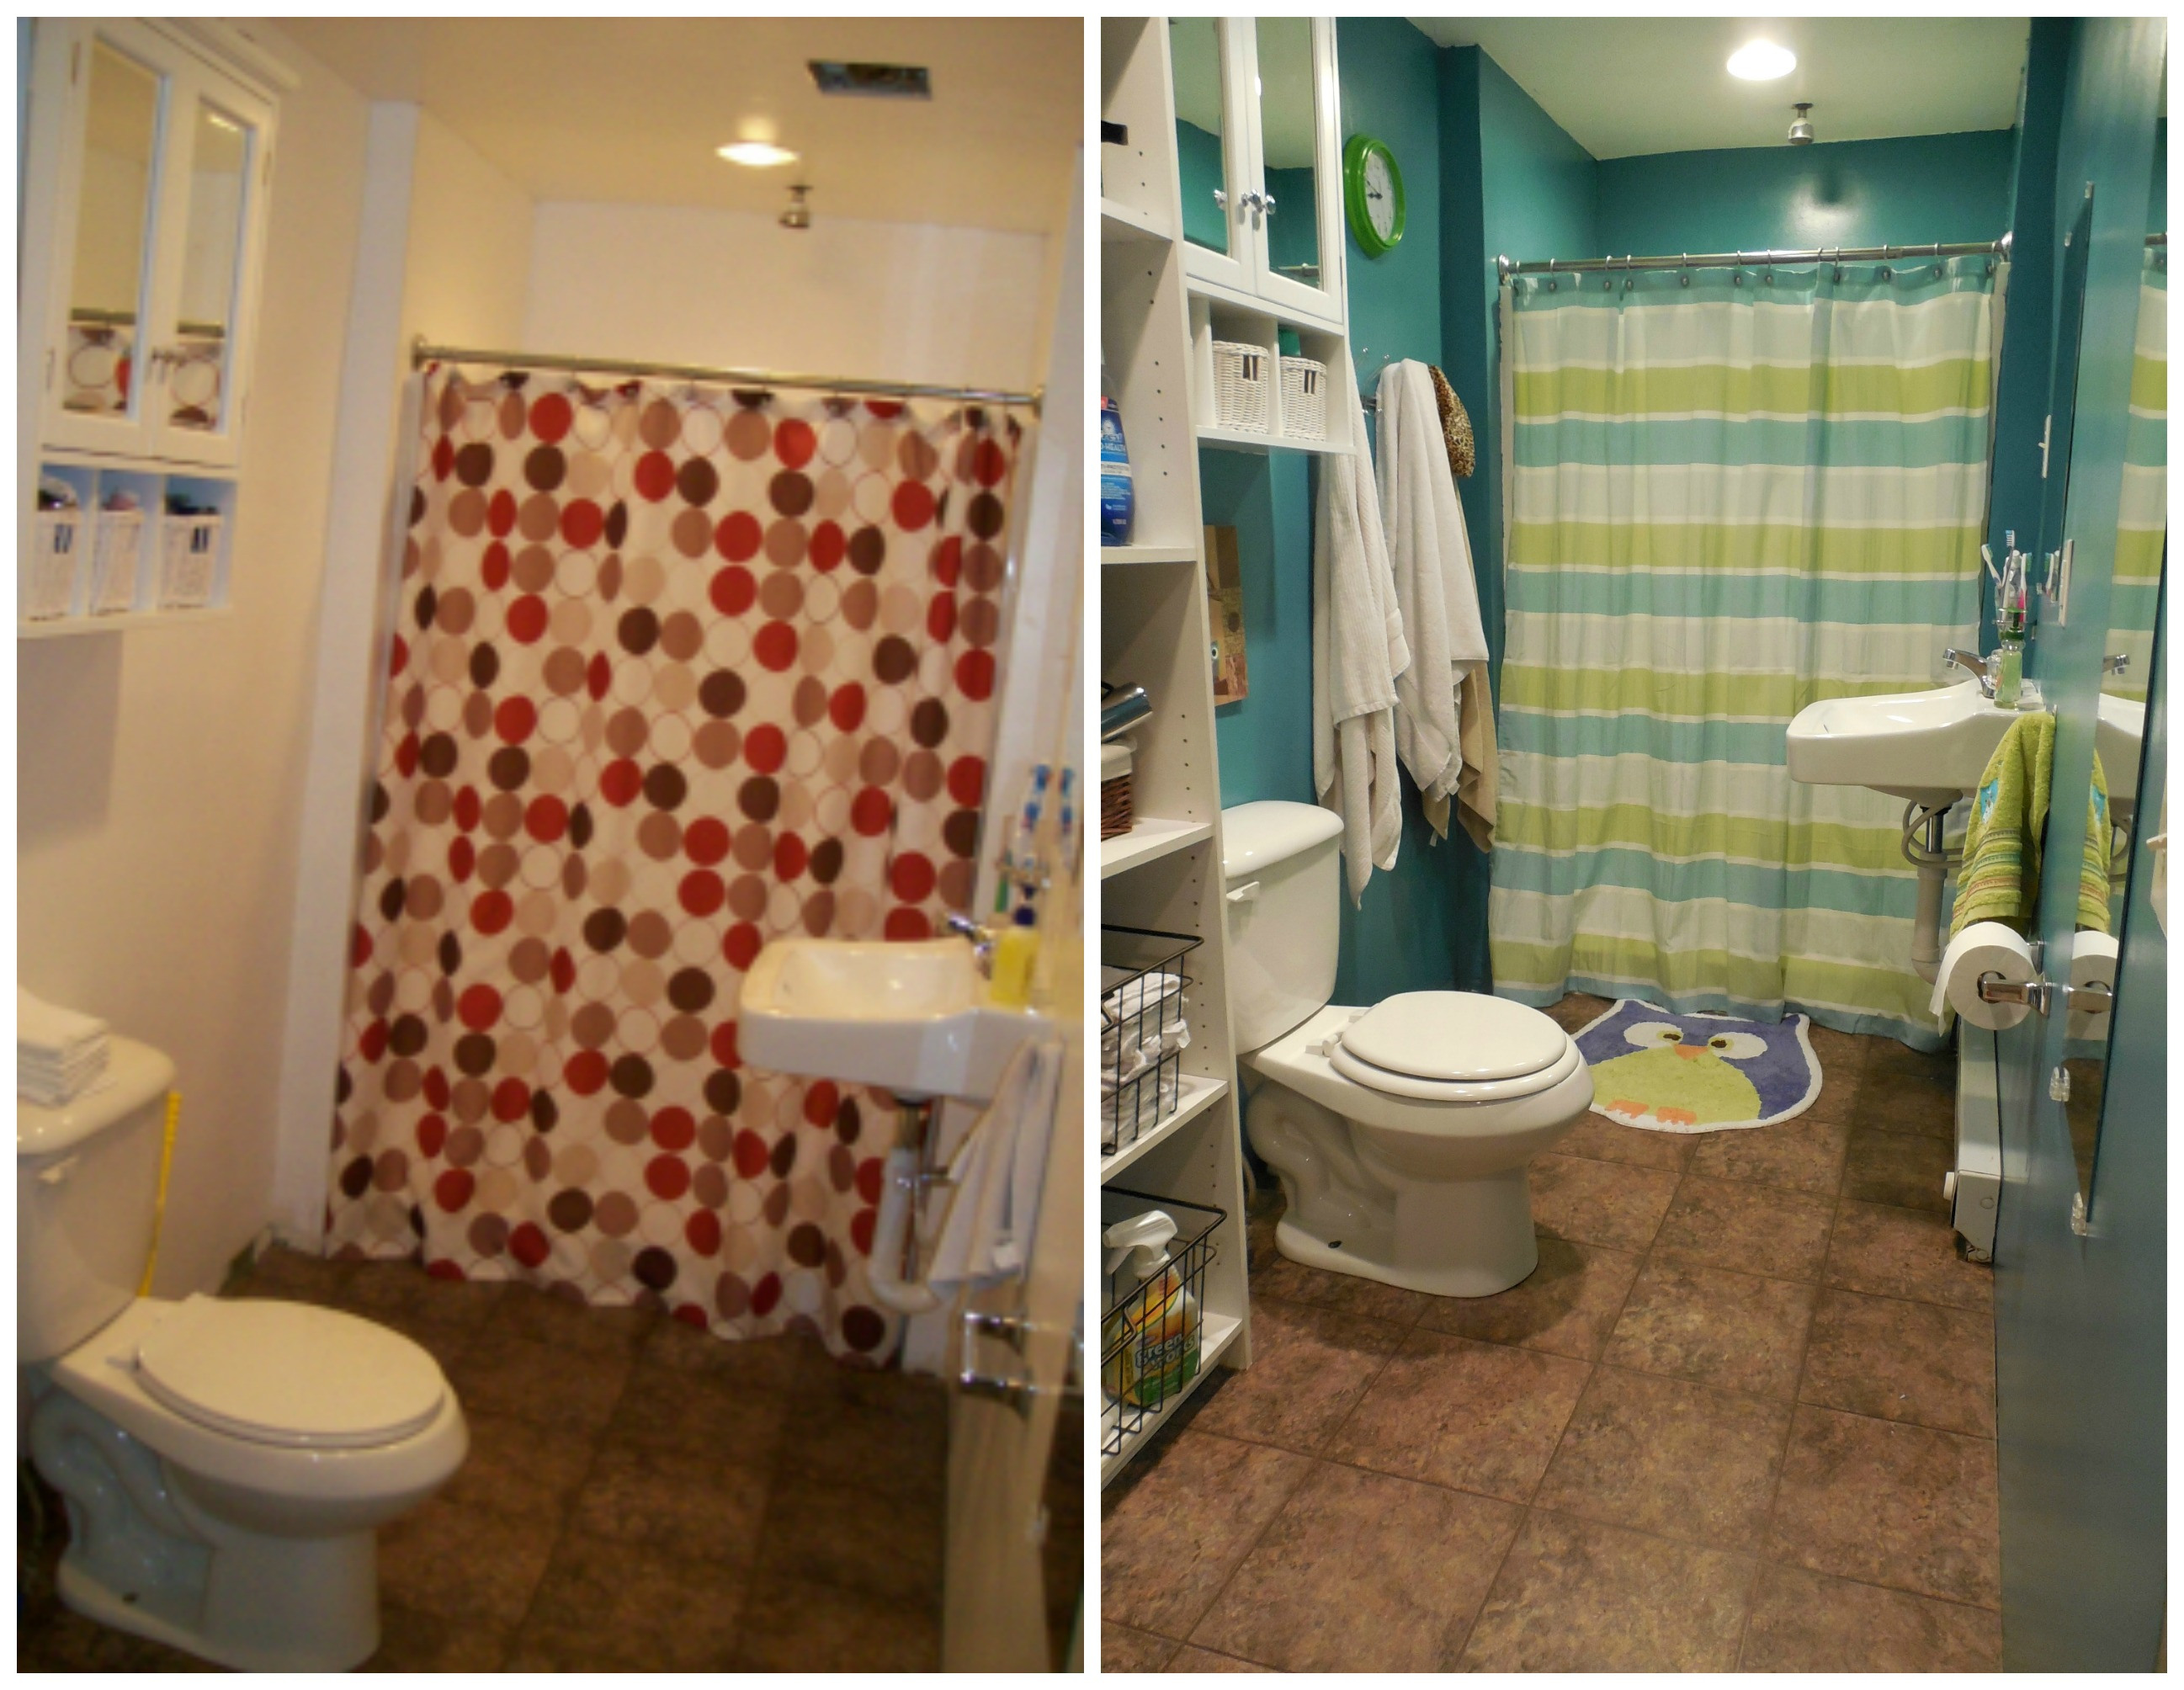 Bathroom interior design ideas for How often should you change your shower curtain